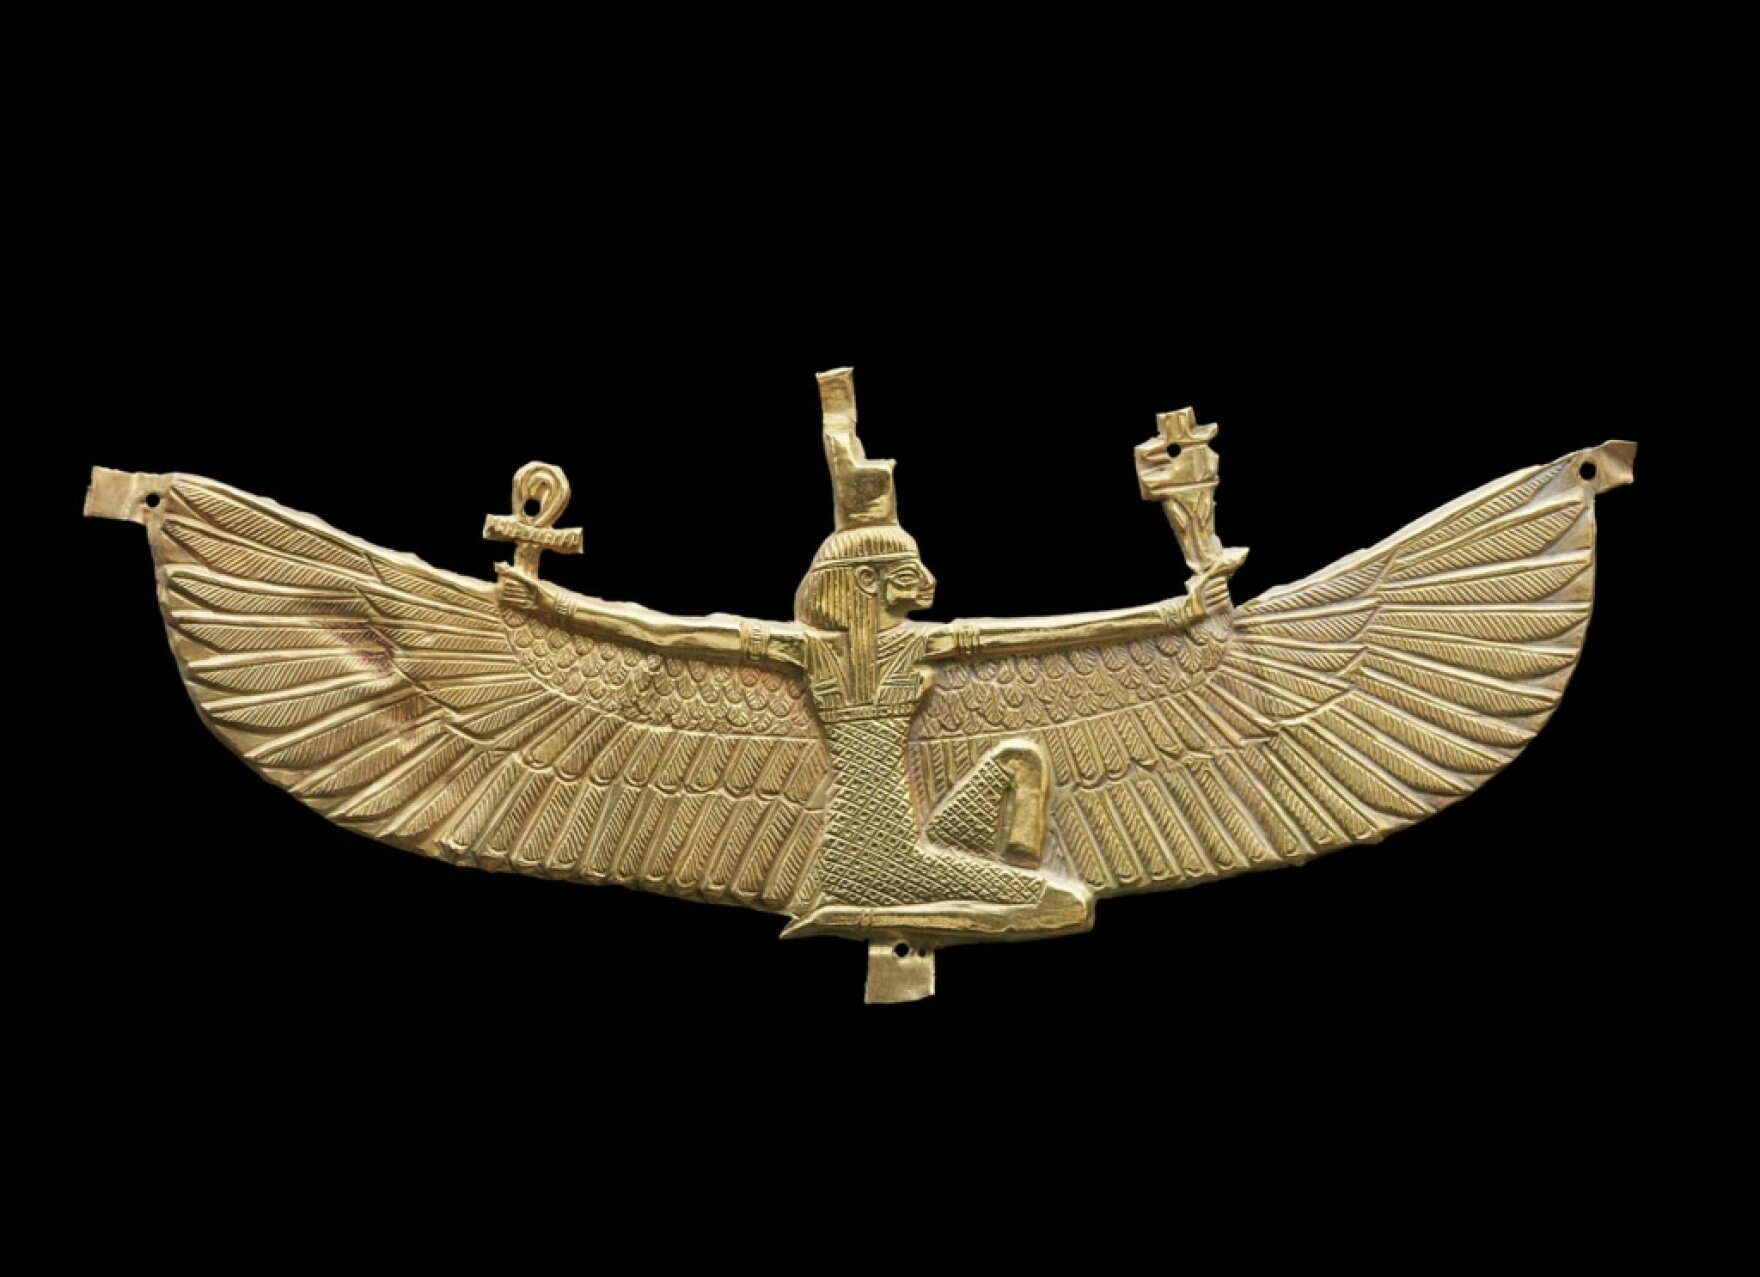 Gold and the Gods: Jewels of Ancient Nubia on view at the Museum of Fine Arts, Boston